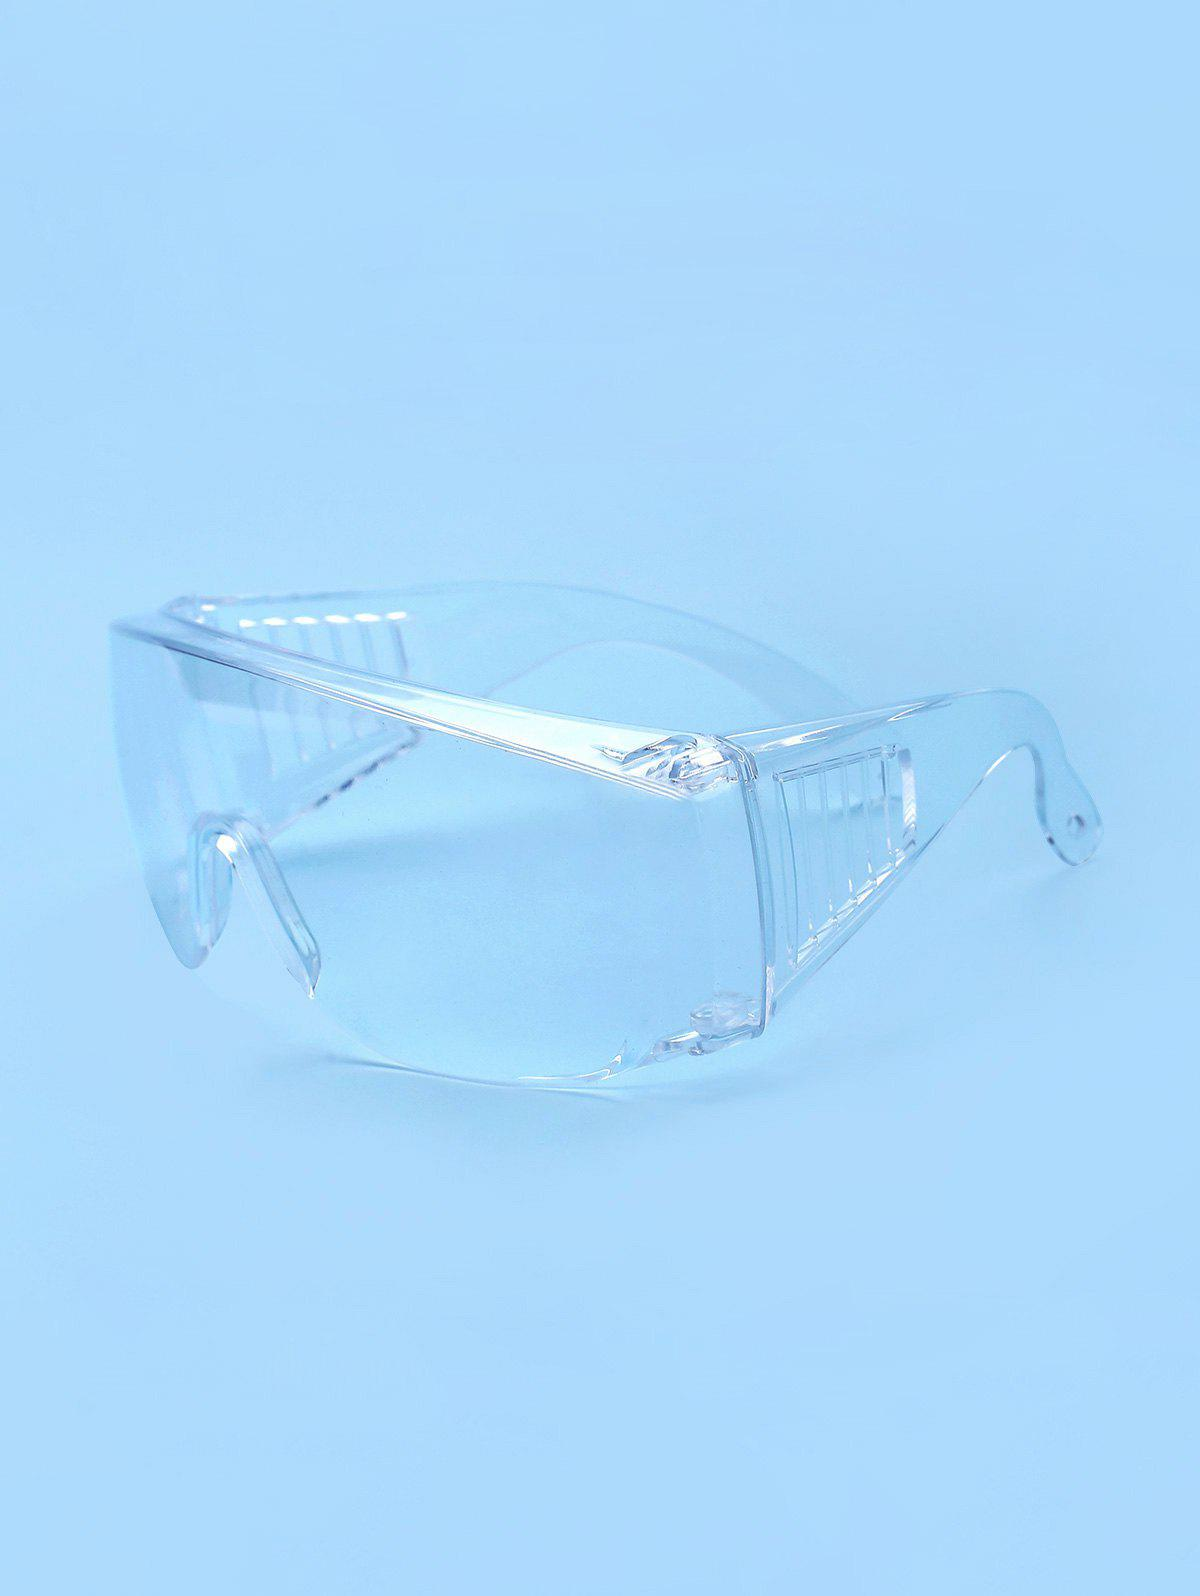 Sale DK-1 Full Protective Eyewear Goggles